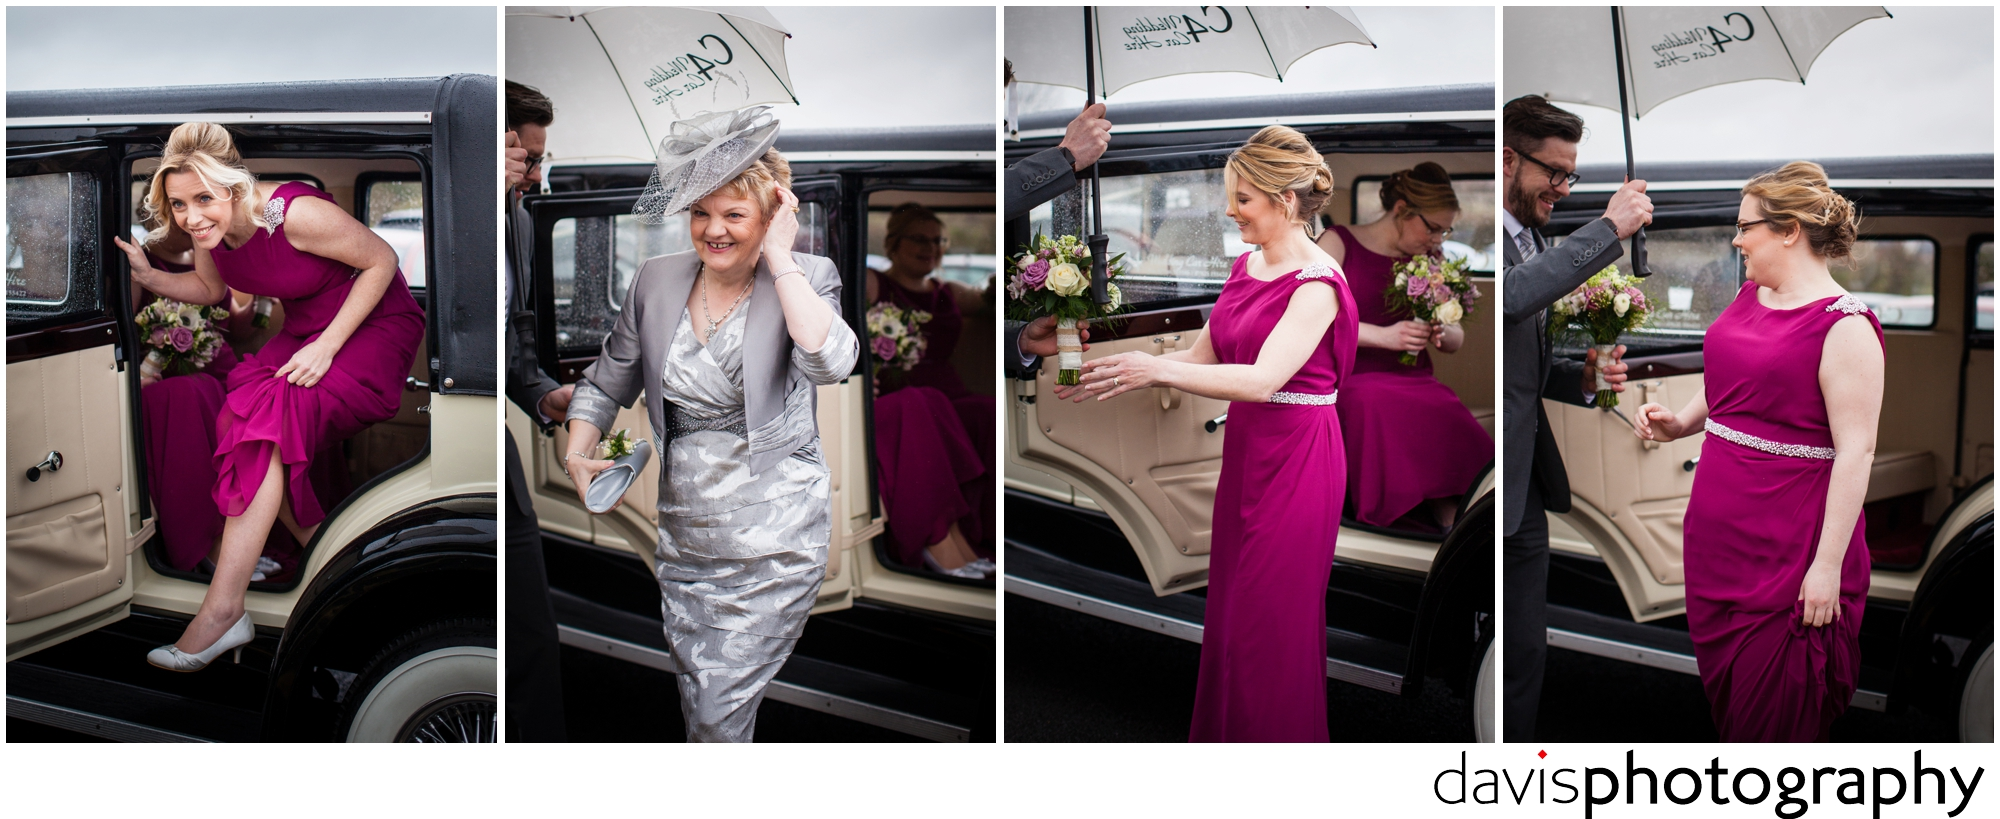 bridesmaids arrive in limo